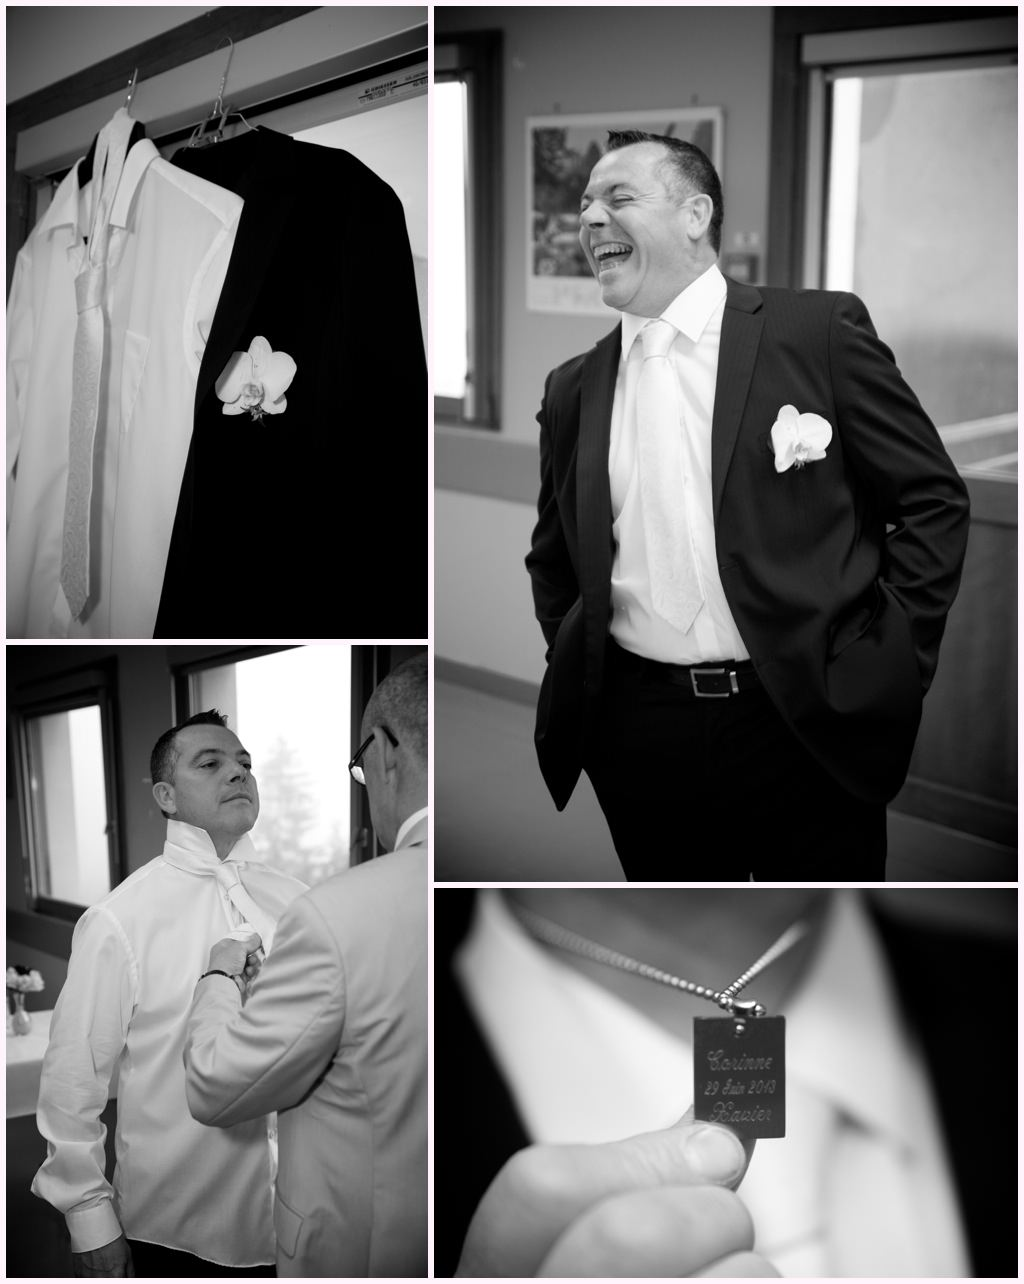 photographe mariage grenoble chambery préparatifs habillage